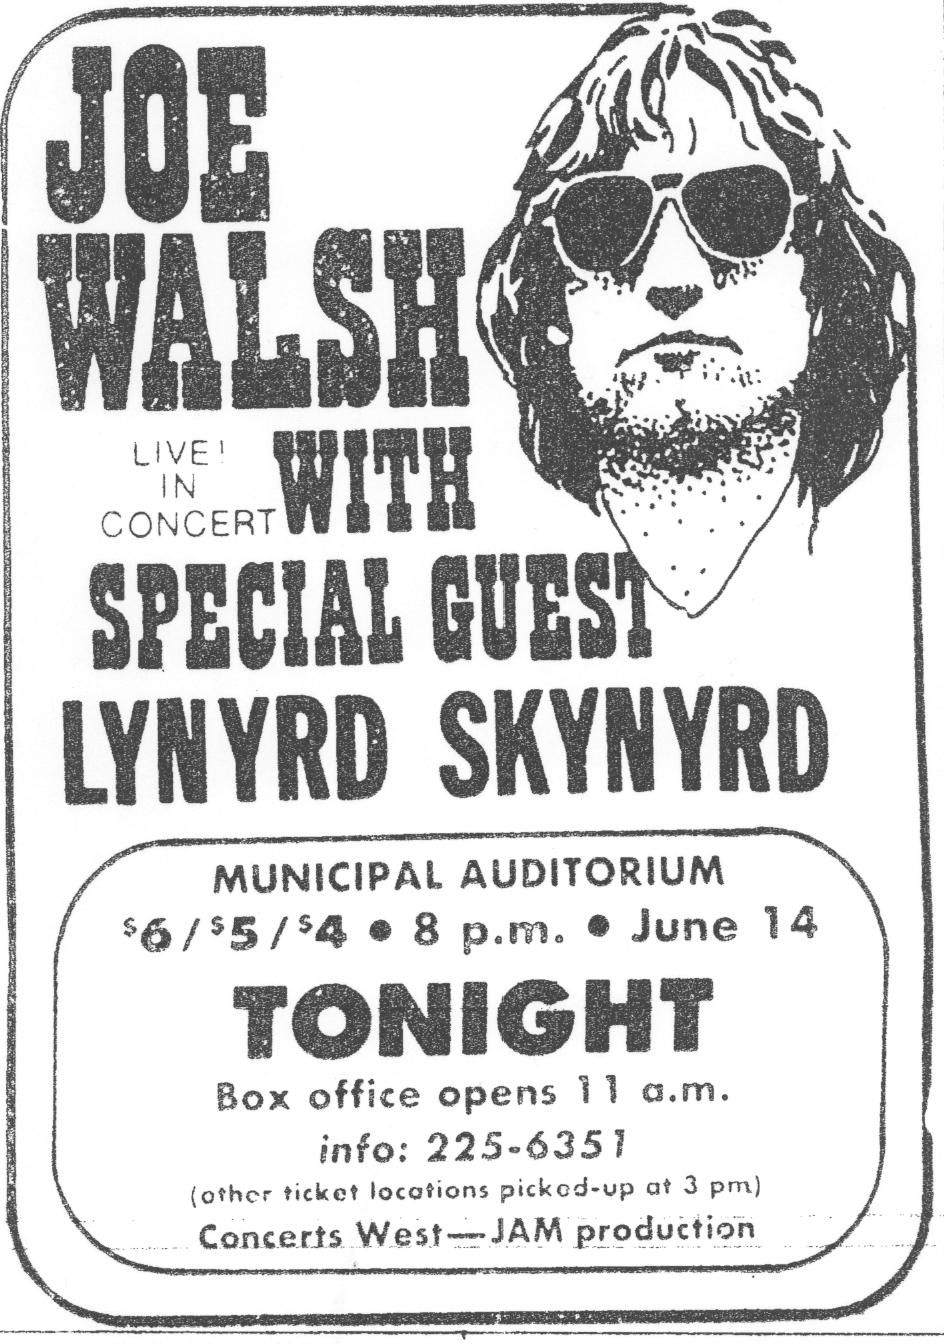 Lynyrd Skynyrd 1974 ~ Joe Walsh & Barnstorm play a concert in Municipal Auditorium. Lynyrd ...